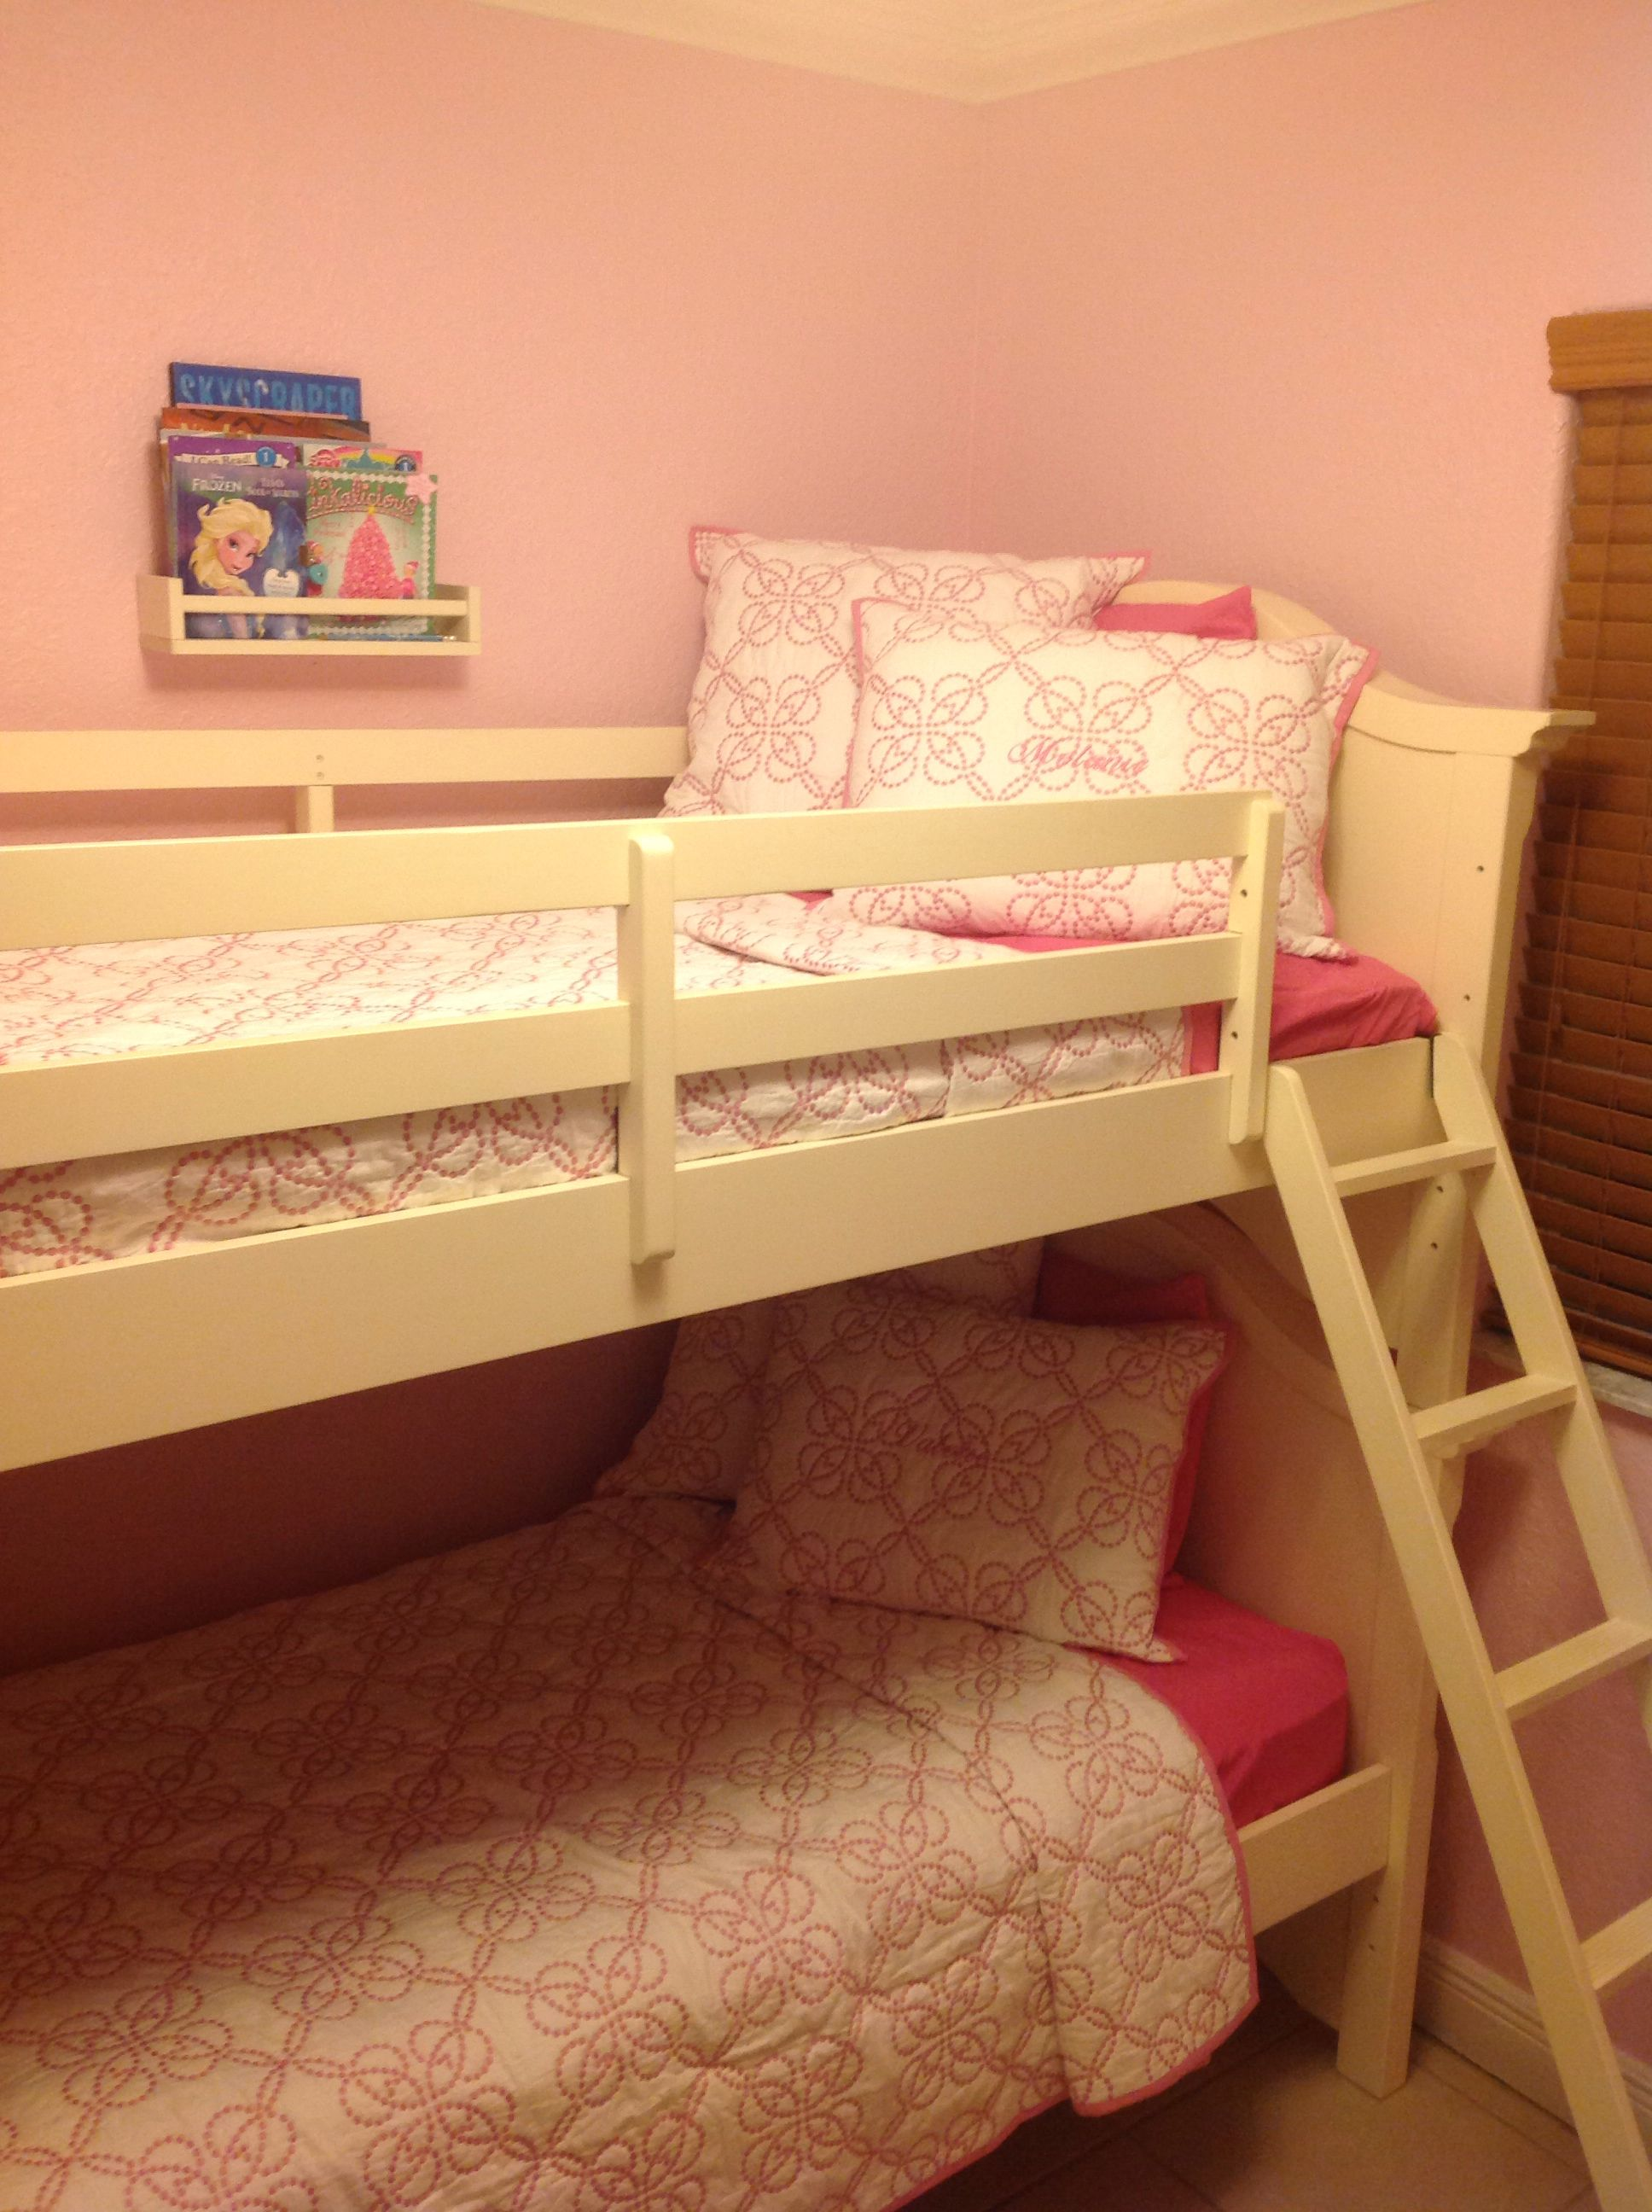 Melanie & Valerie's bunk bed project finally completed!